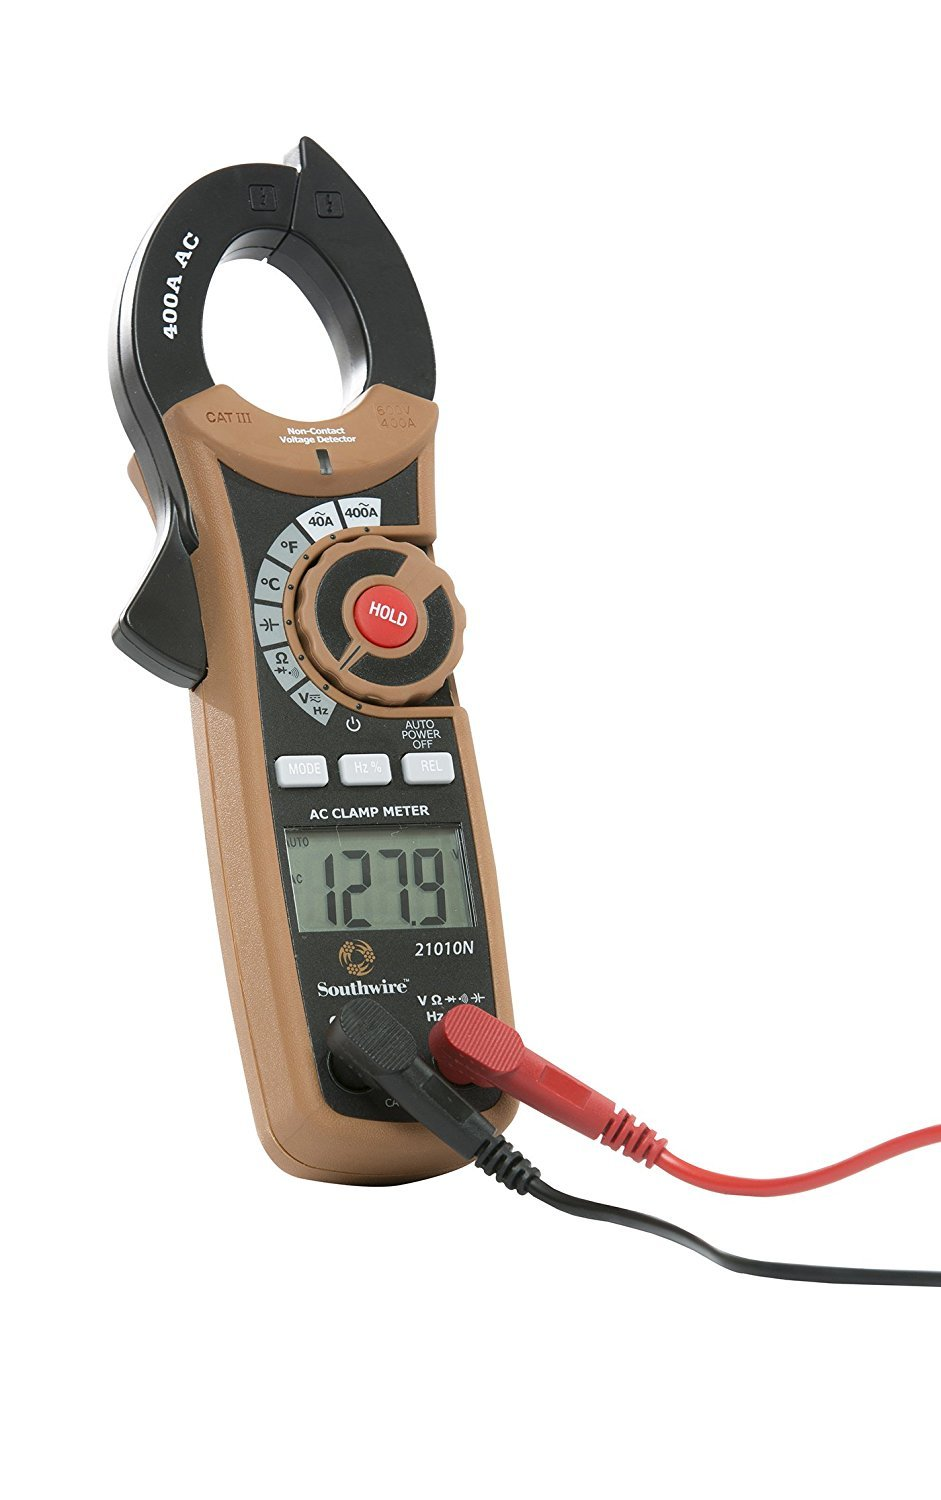 Southwire Tools & Equipment 21010N 400A Digital Clamp Meter, Multimeter with Voltage, AC Current, Resistance, and Capacitance Tests by Southwire